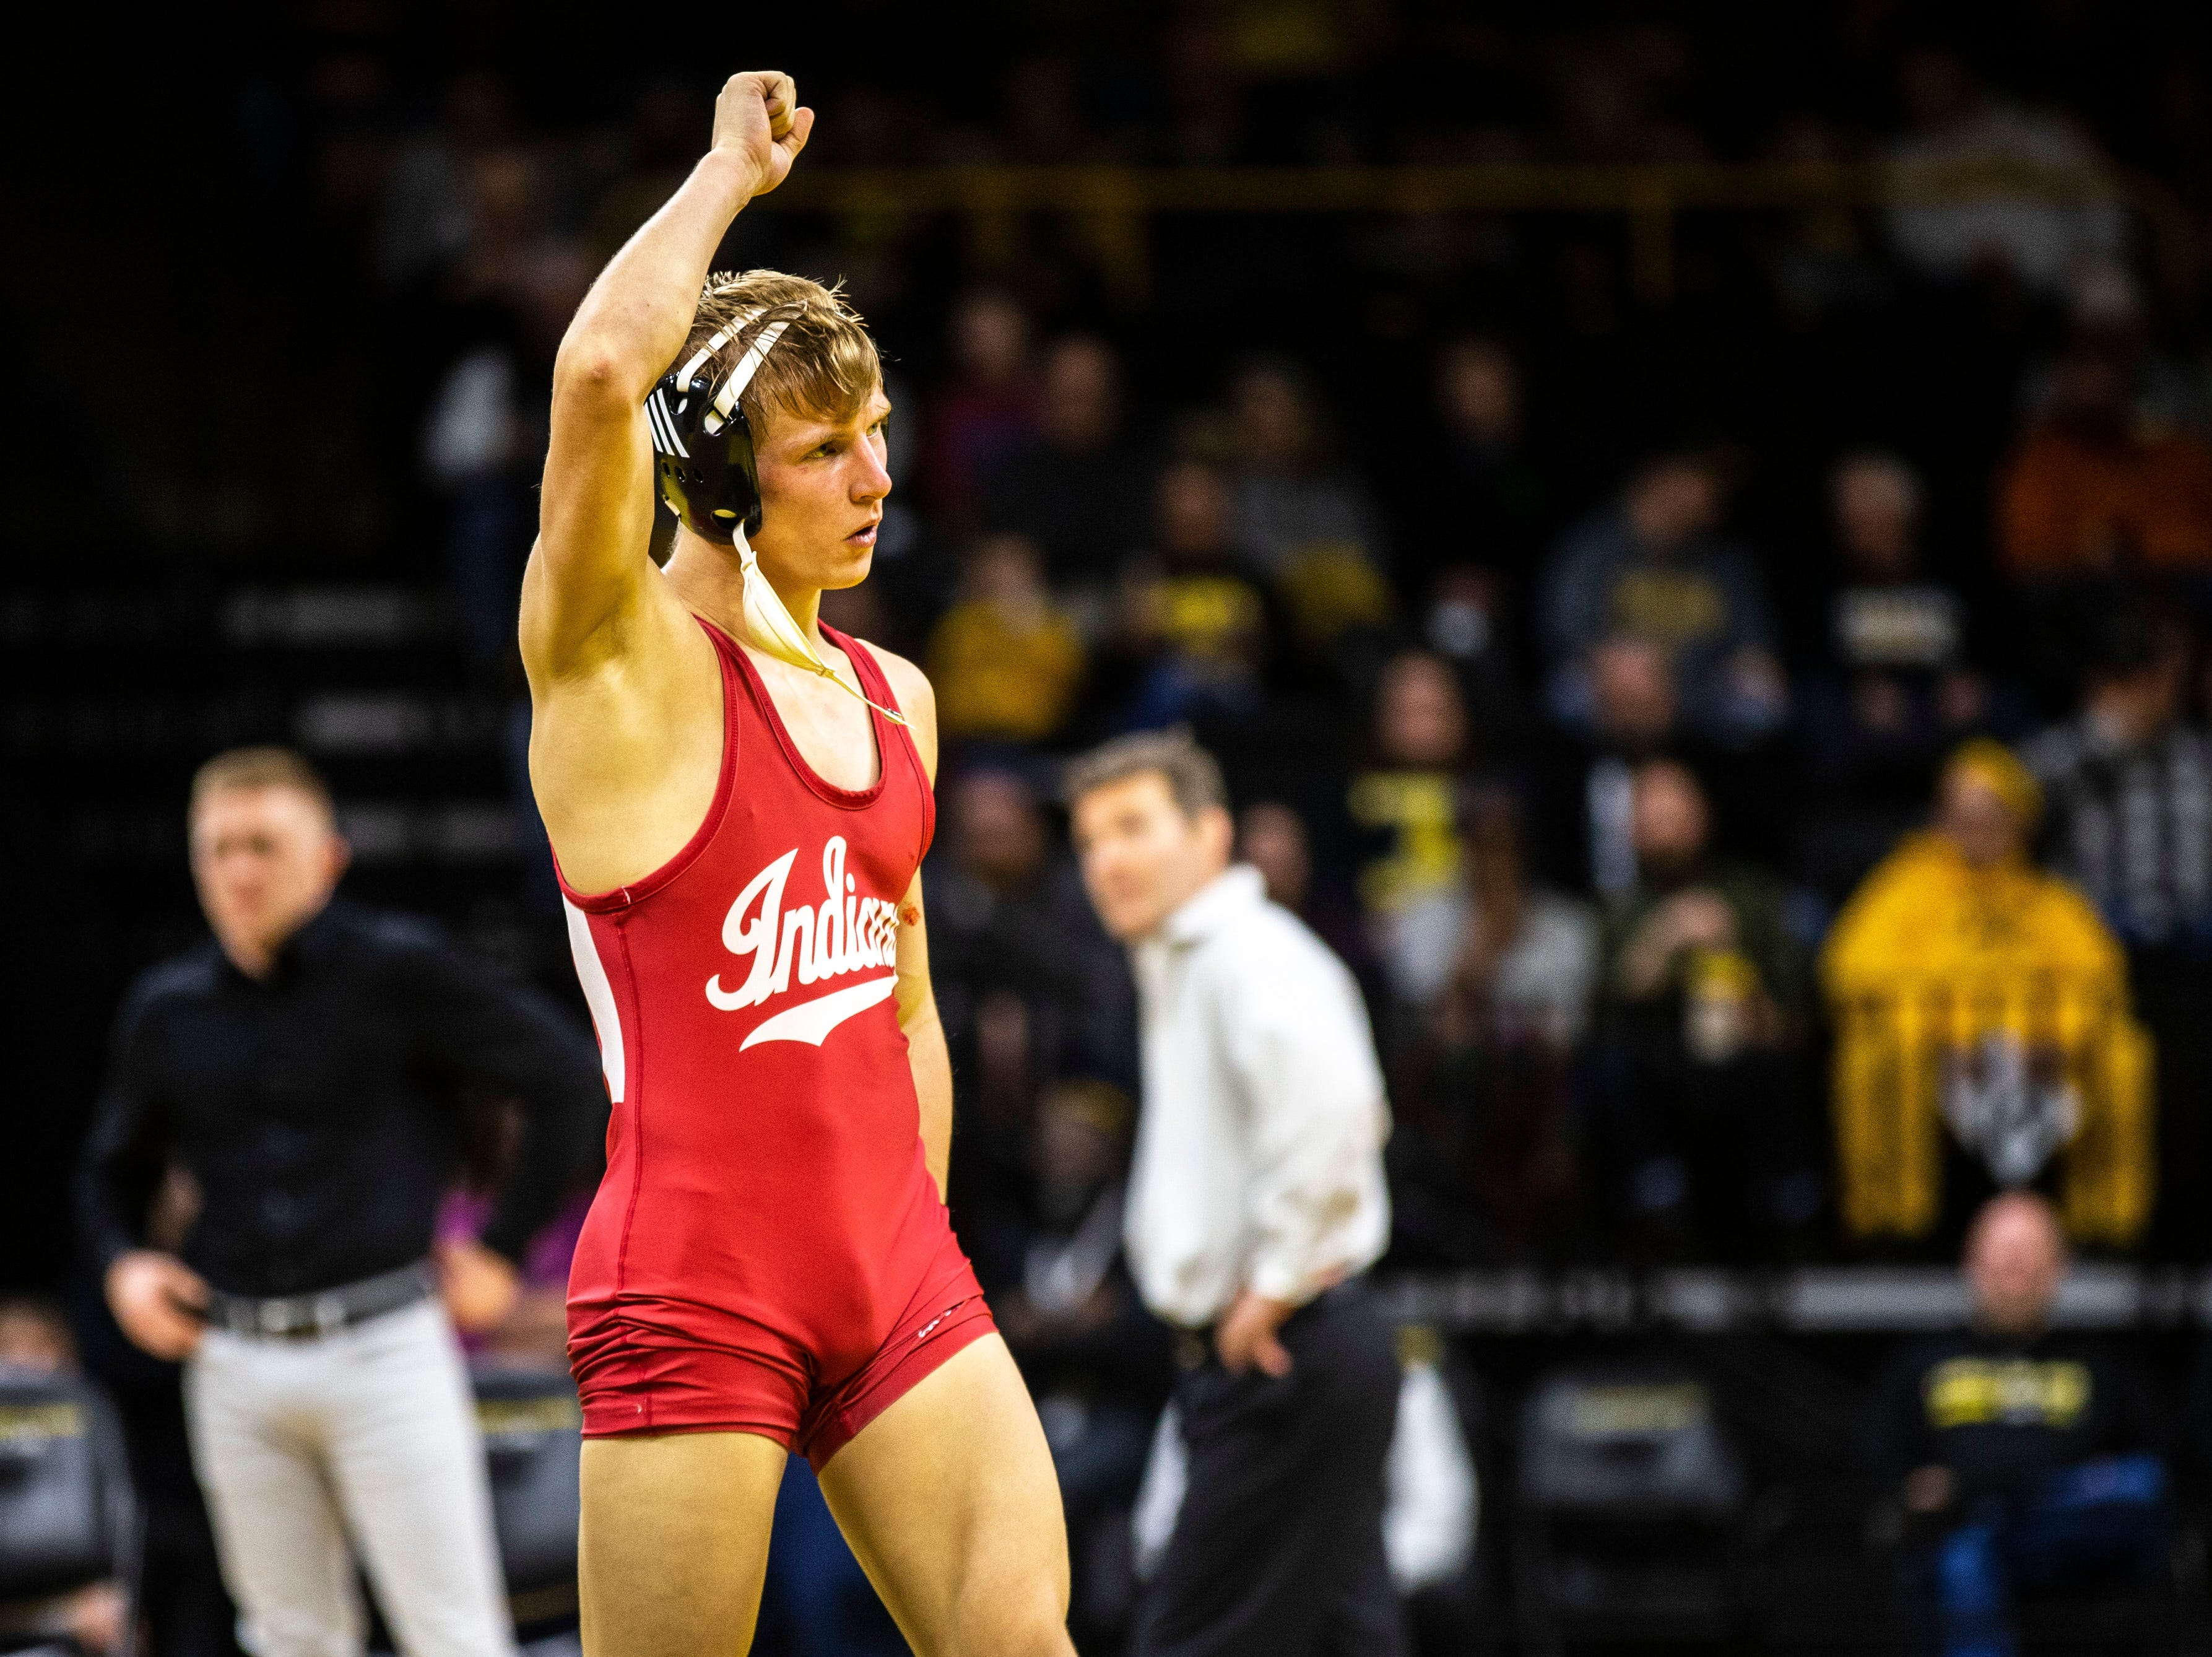 Indiana's Kyle Luigs reacts after pinning Iowa's Max Murin at 141 during a NCAA Big Ten Conference wrestling dual on Friday, Feb. 15, 2019 at Carver-Hawkeye Arena in Iowa City, Iowa.